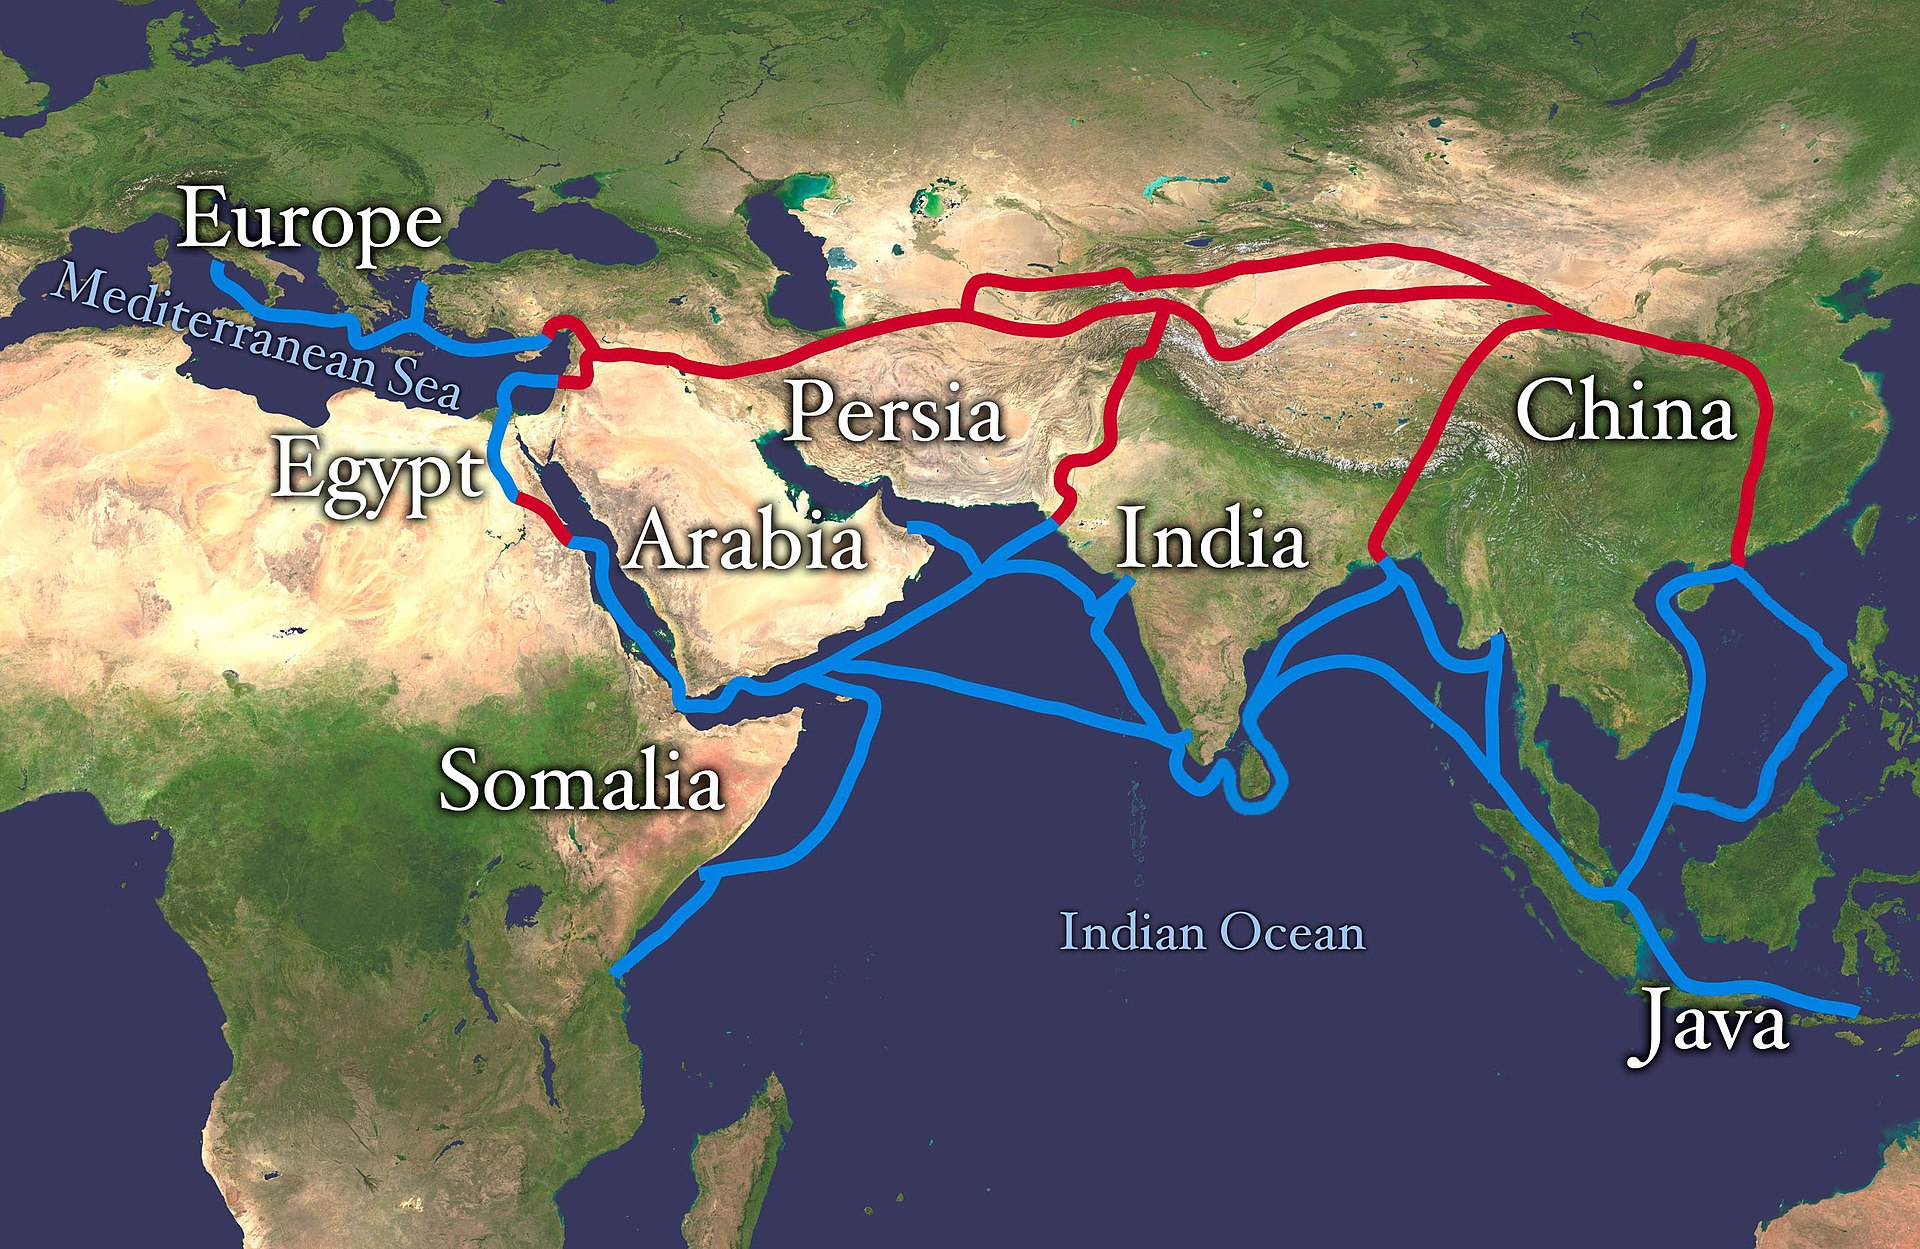 All roads Lead to Beijing through Chinese Maritime Silk Road